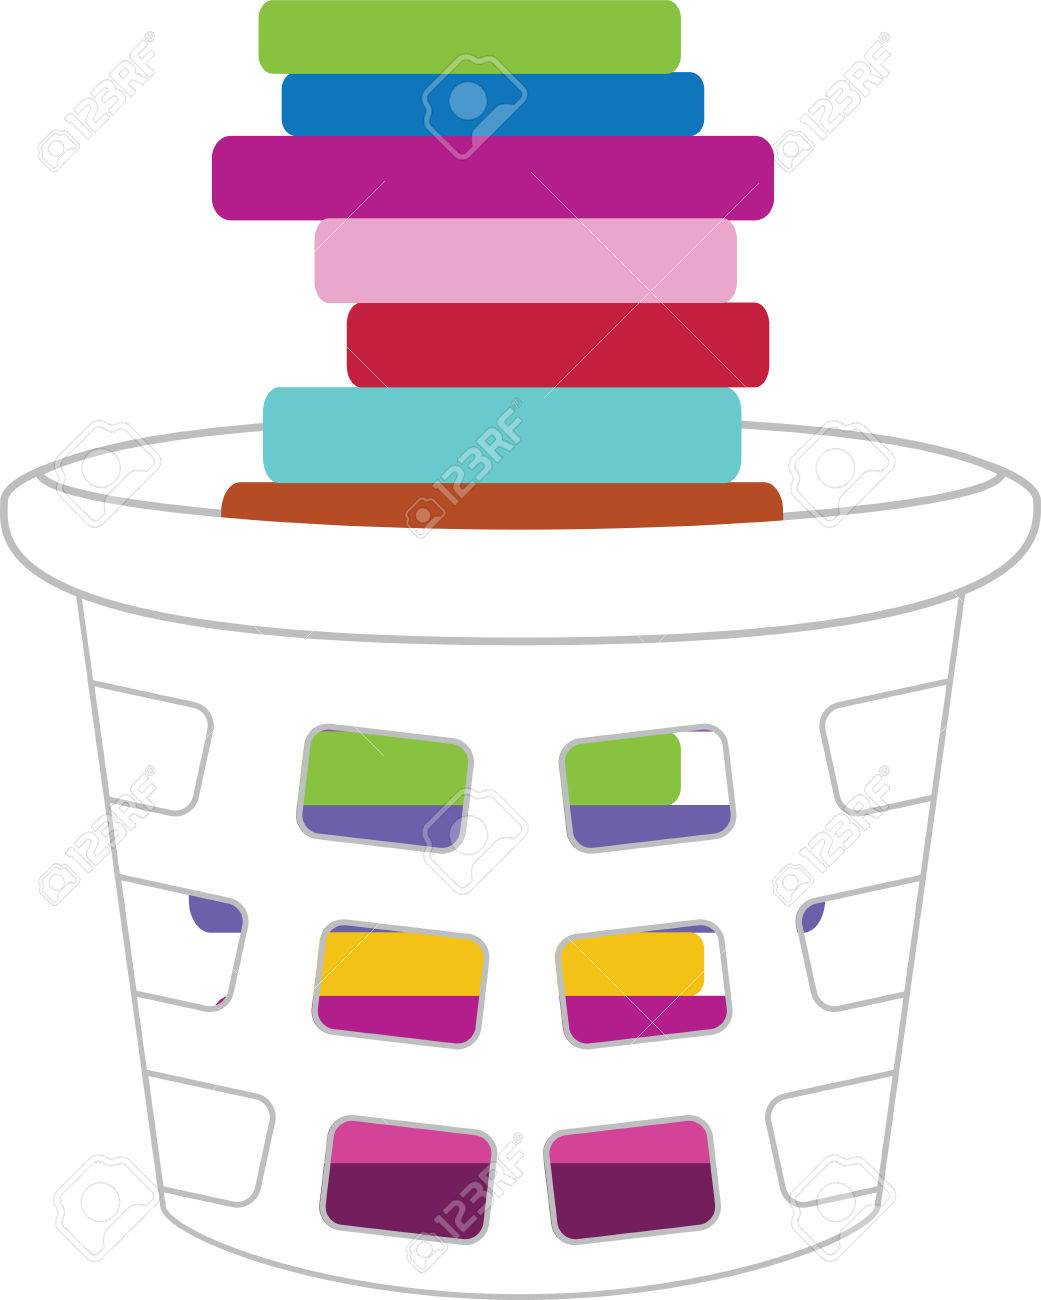 1041x1300 Folded Laundry Clipart. Laundry Wash Dry And Fold Folded Clipart P